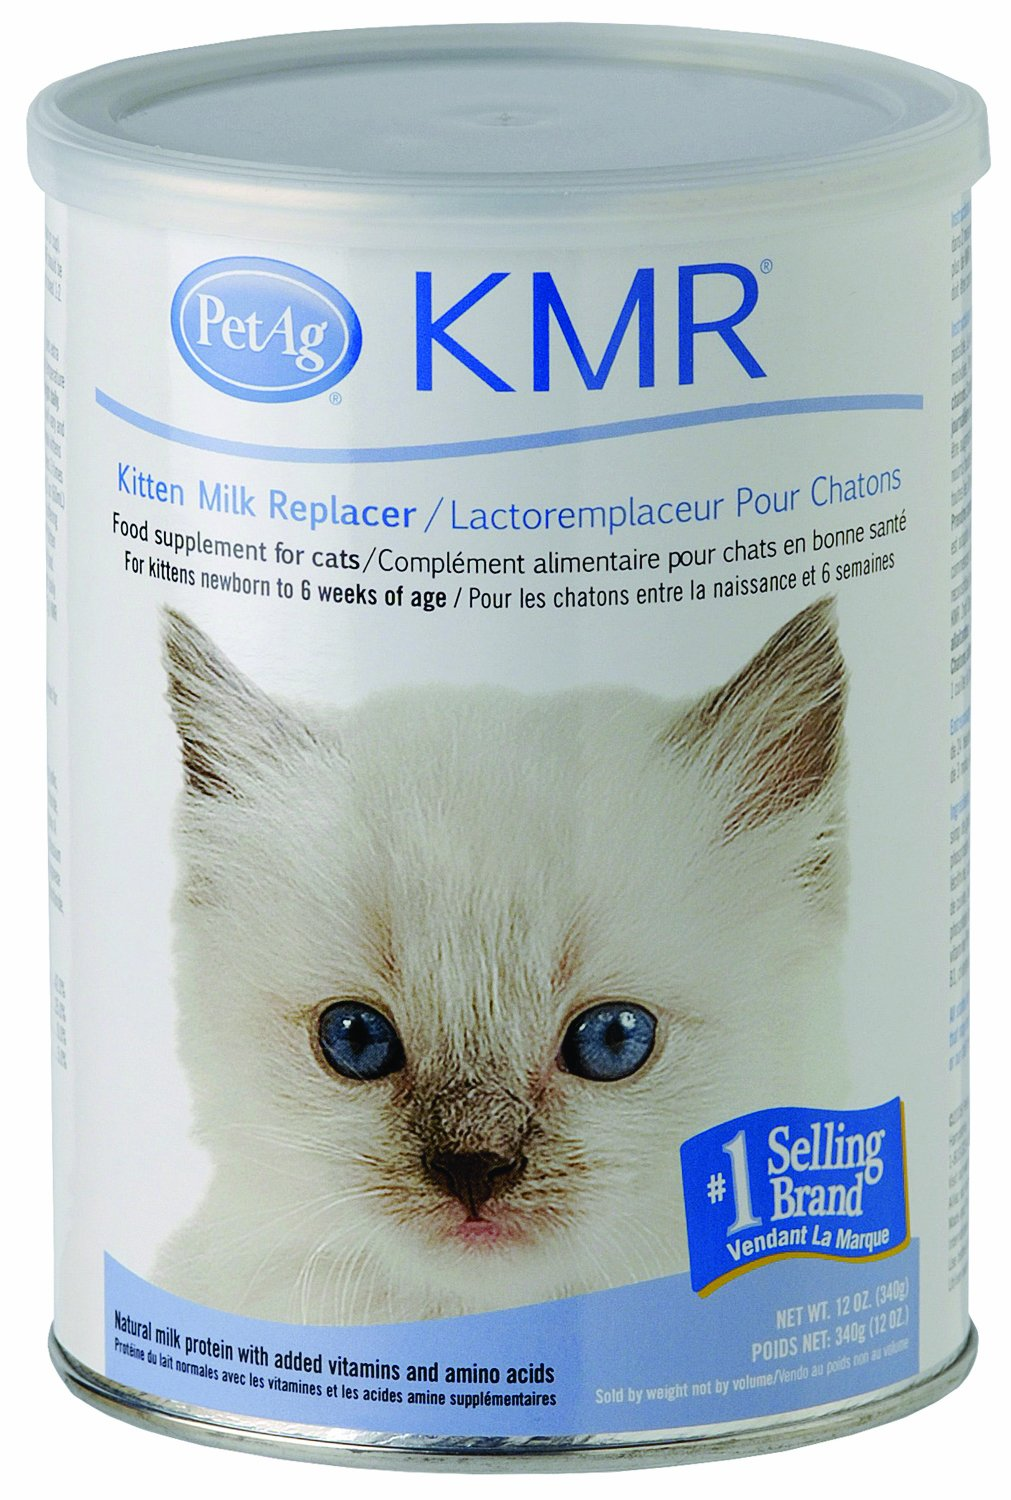 KMR® Powder for Kittens & Cats, 12oz by PetAg